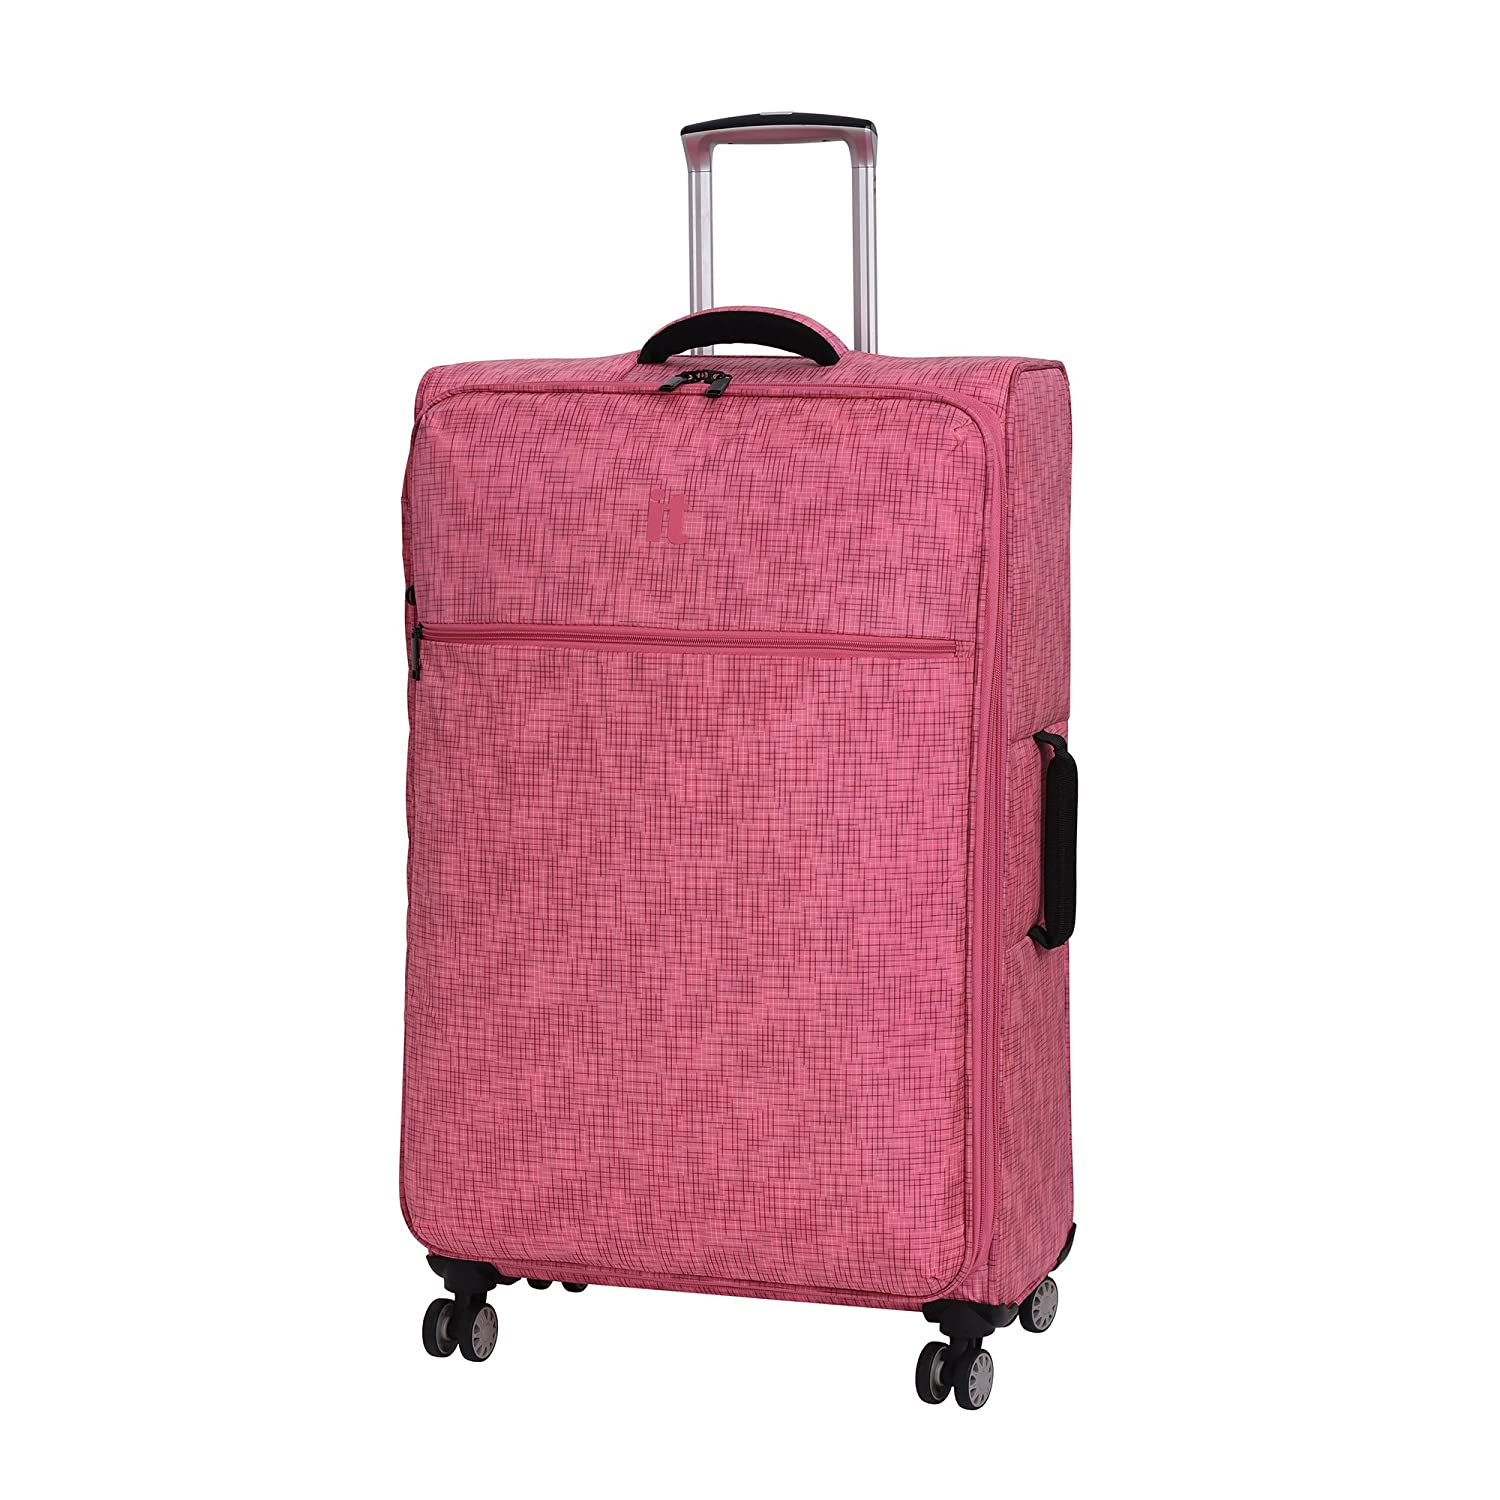 it luggage 30.5 Stitched Squares 8 Wheel Lightweight Expandable Spinner Black IT Luggage Parent Code 12-220108-UOL28-M133